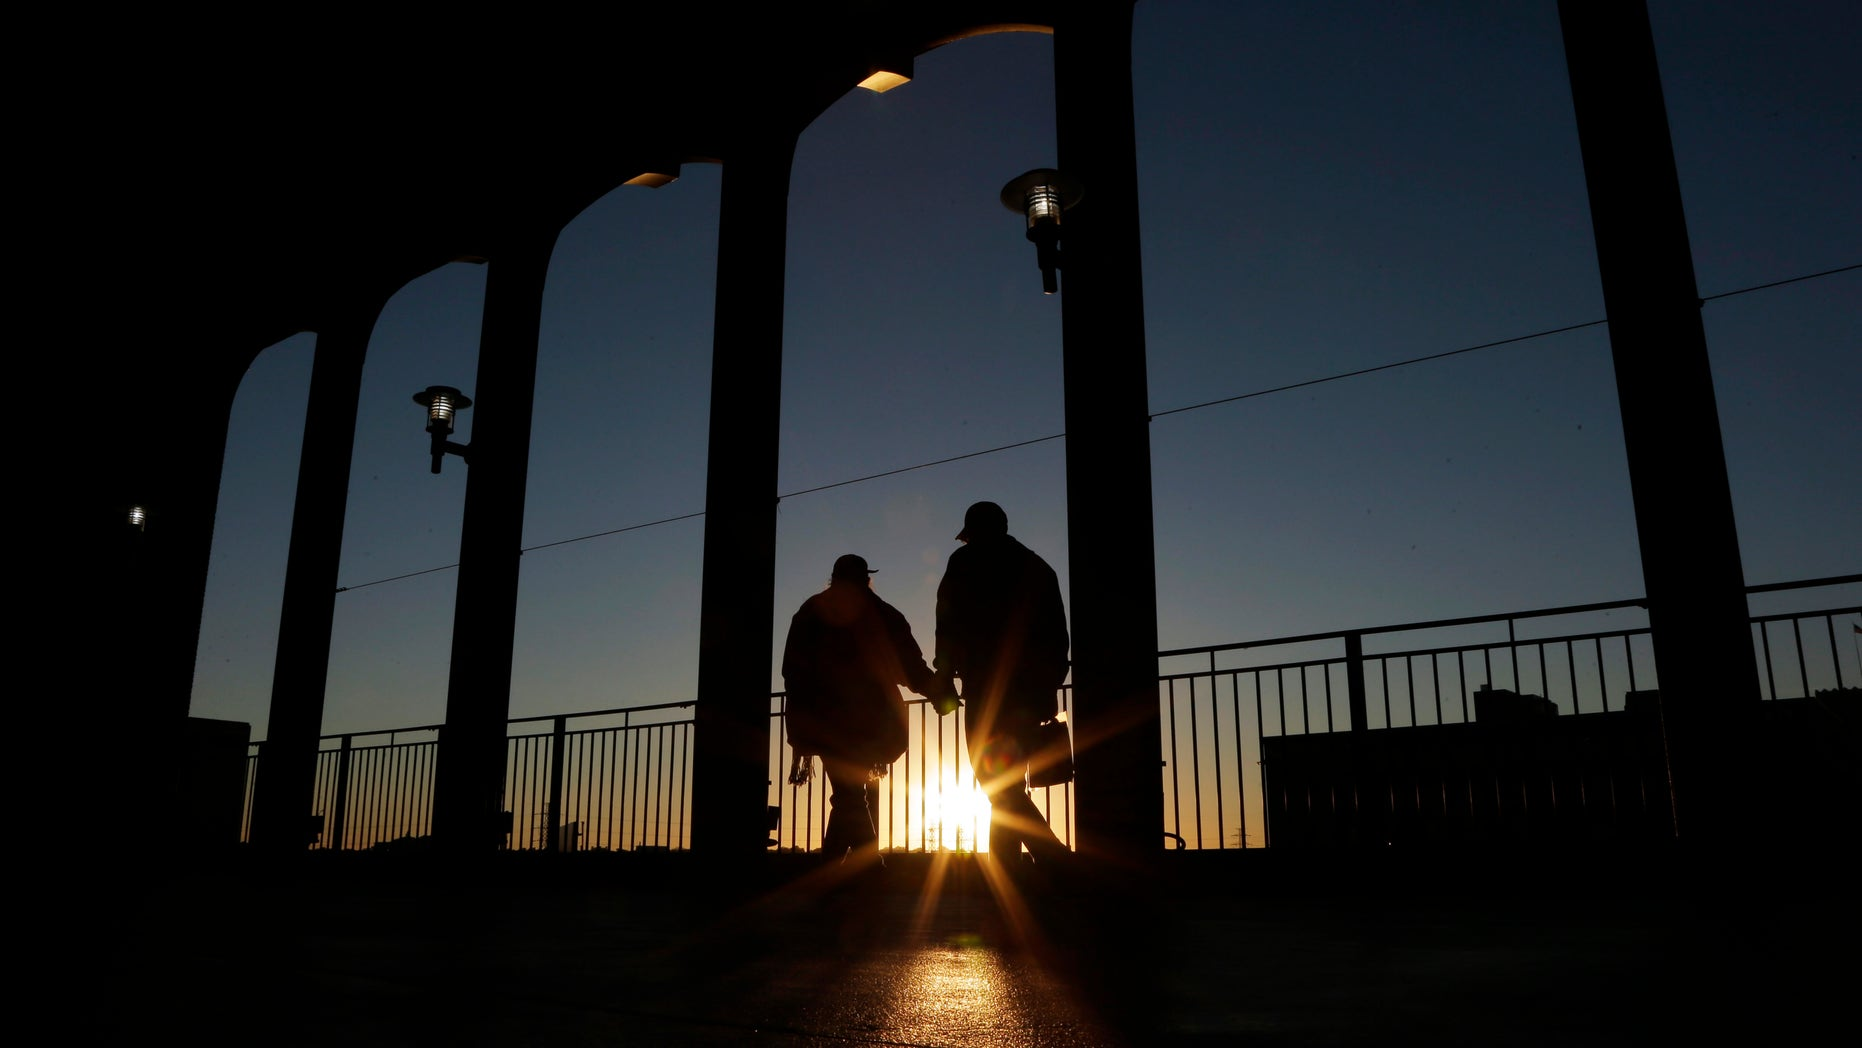 Baseball fans arrive at Busch Stadium for Stadium Game 4 of baseball's World Series between the St. Louis Cardinals and the Boston Red Sox, Sunday, Oct. 27, 2013, in St. Louis. (AP Photo/Charlie Riedel)